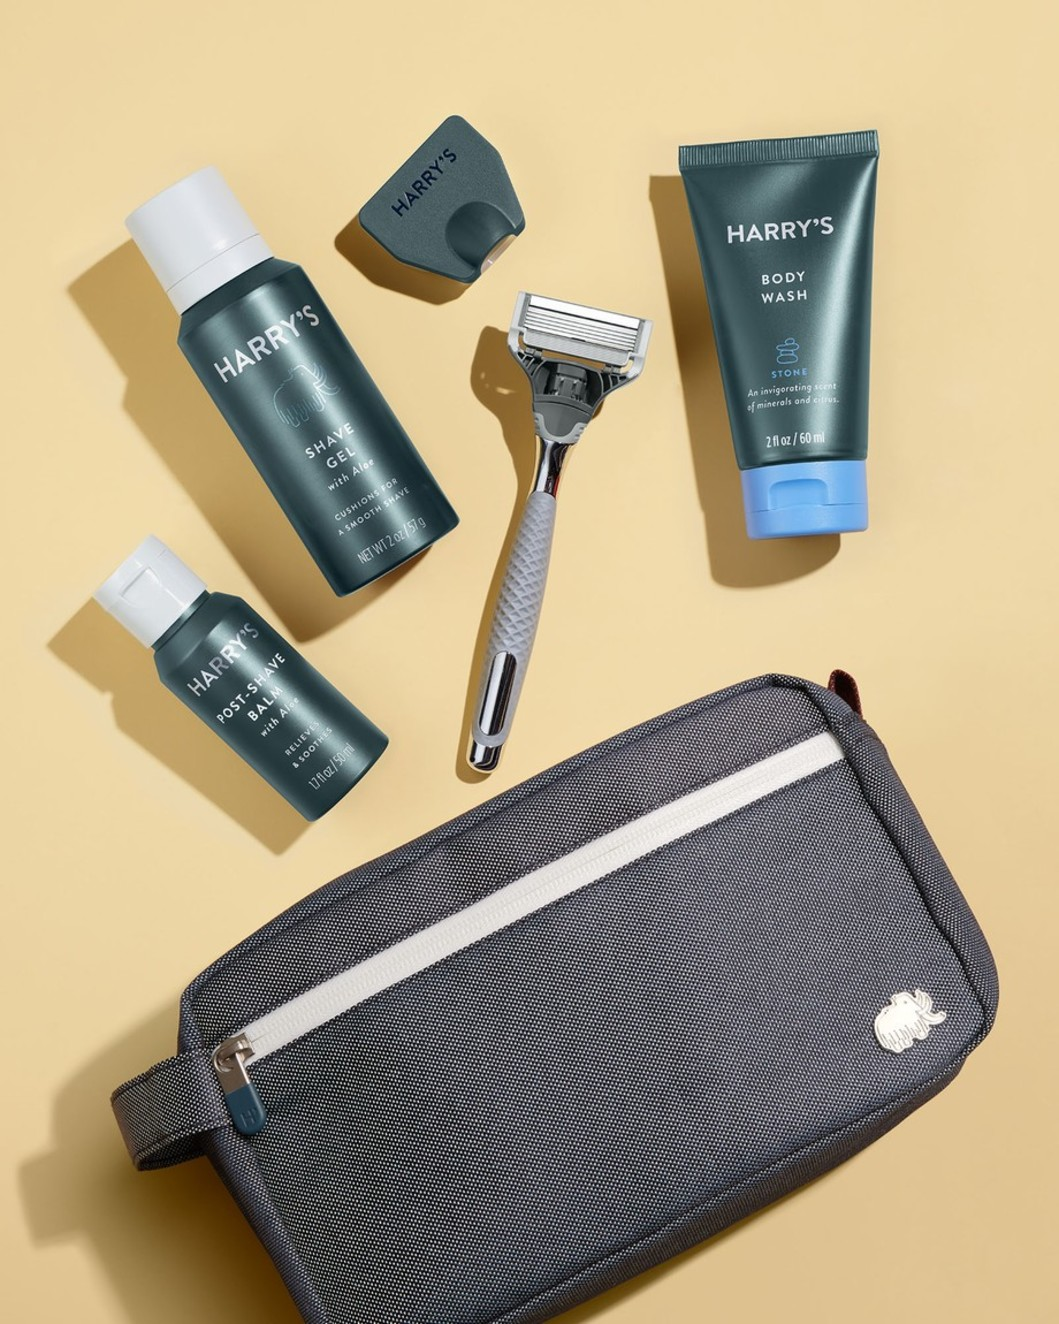 Deluxe Travel Kit - Winston Handle, Stone Body Wash